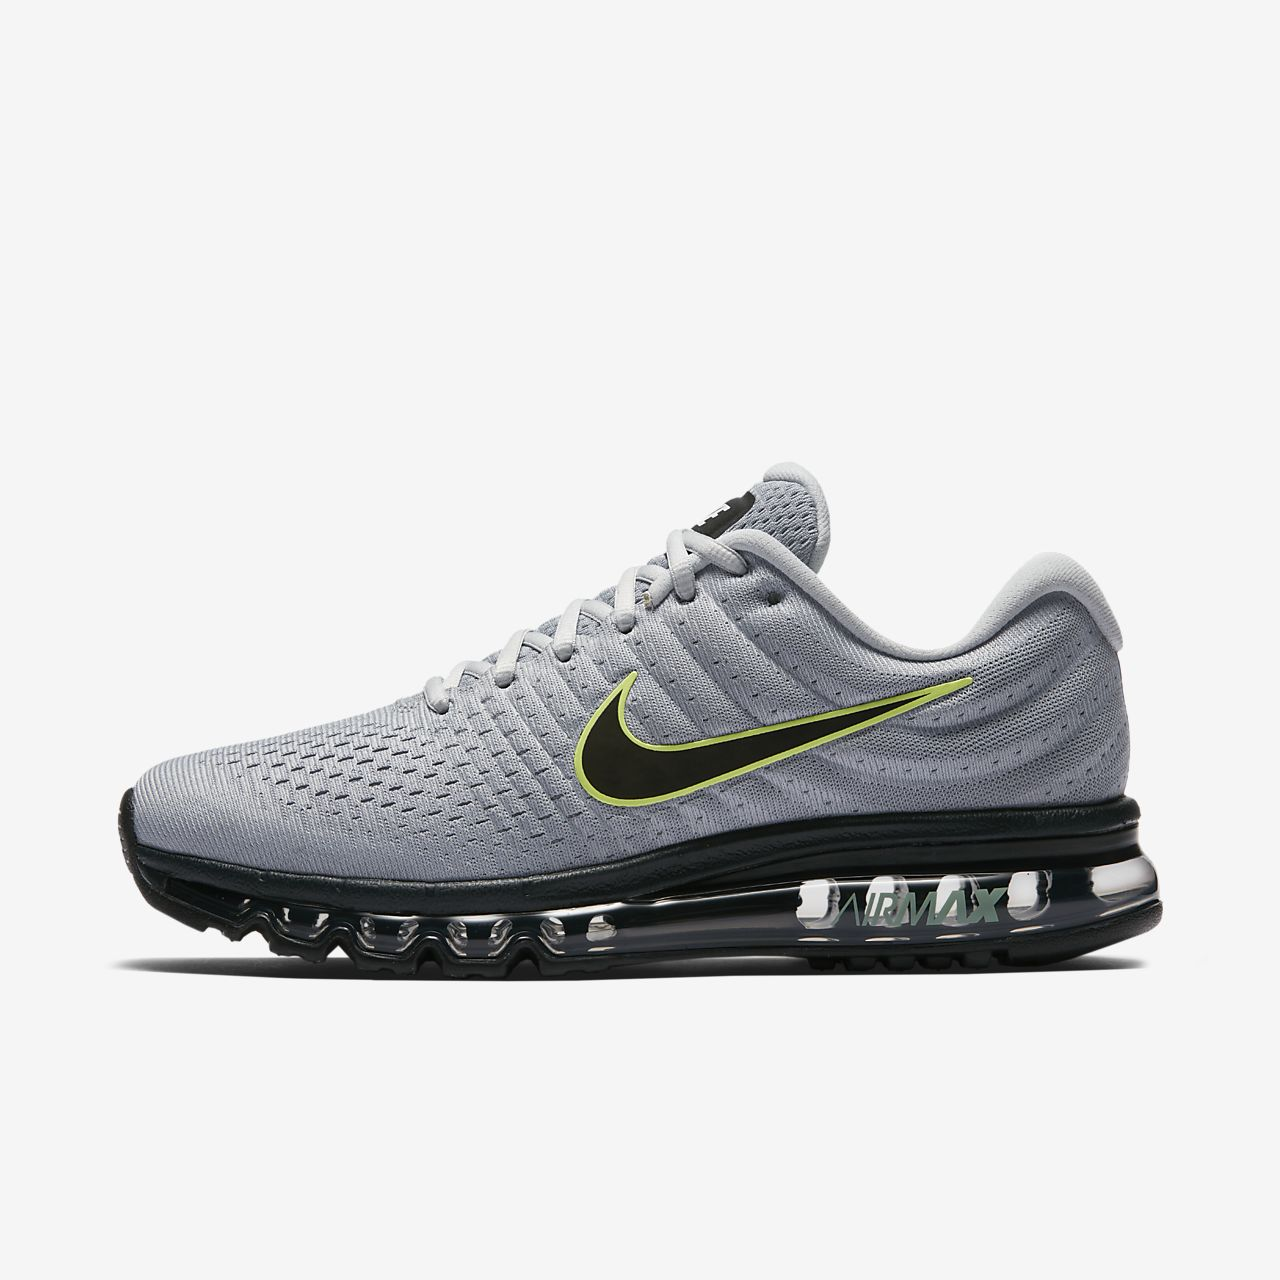 f3152d4a29a0 Nike Air Max 2017 Men s Shoe. Nike.com NO